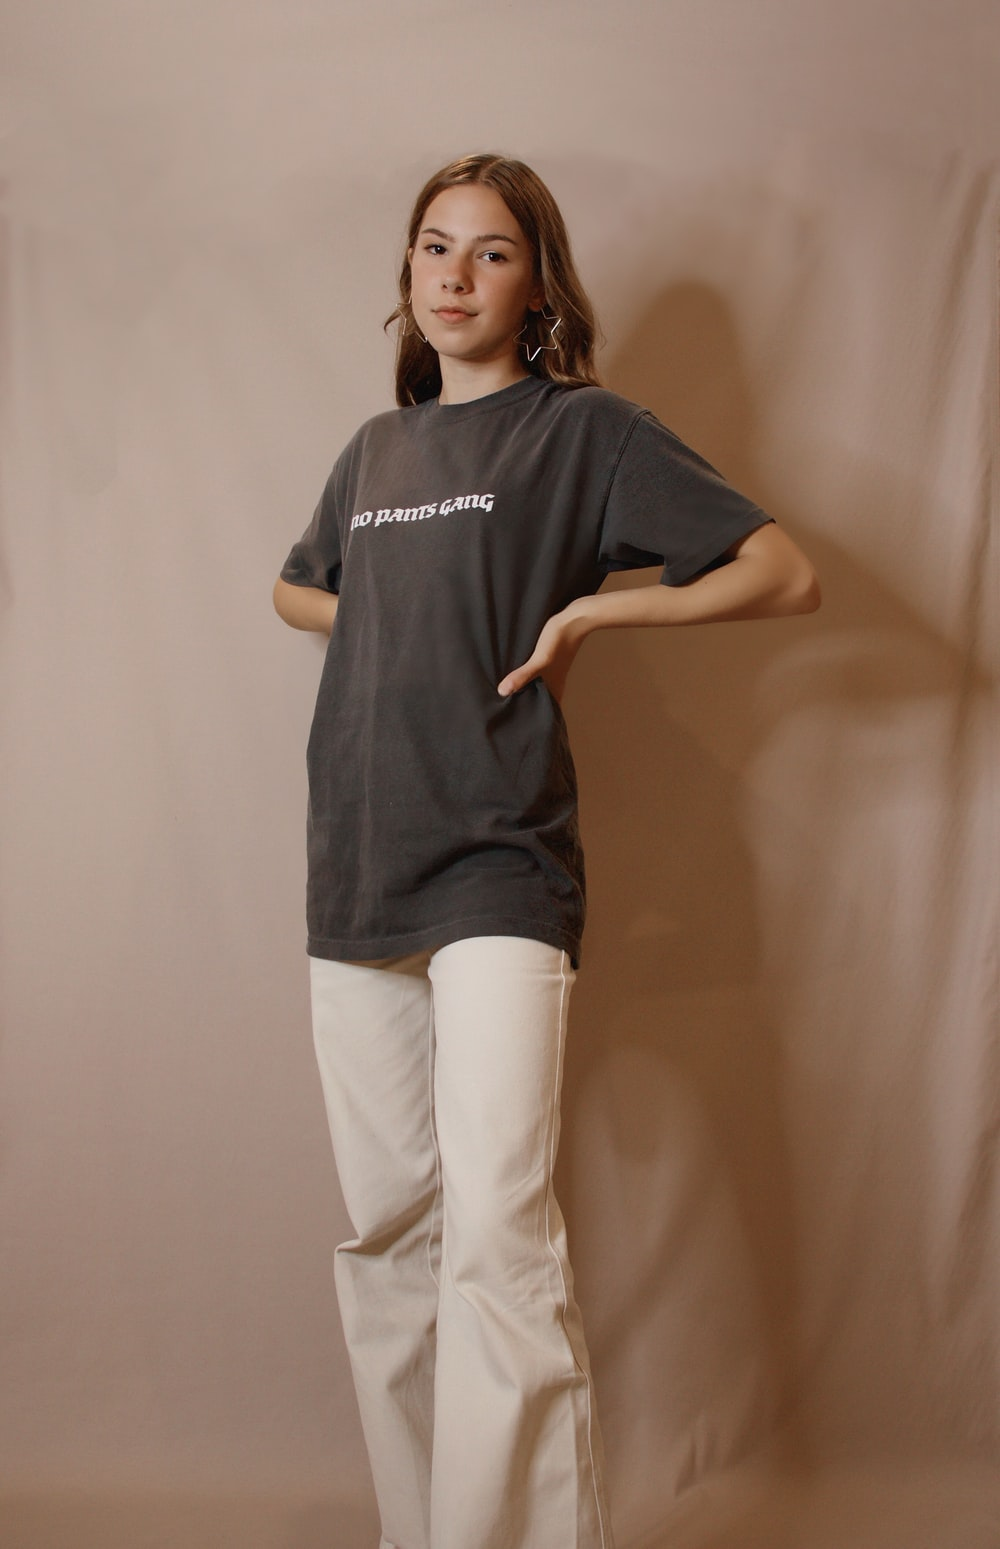 woman in black crew neck t-shirt and white pants